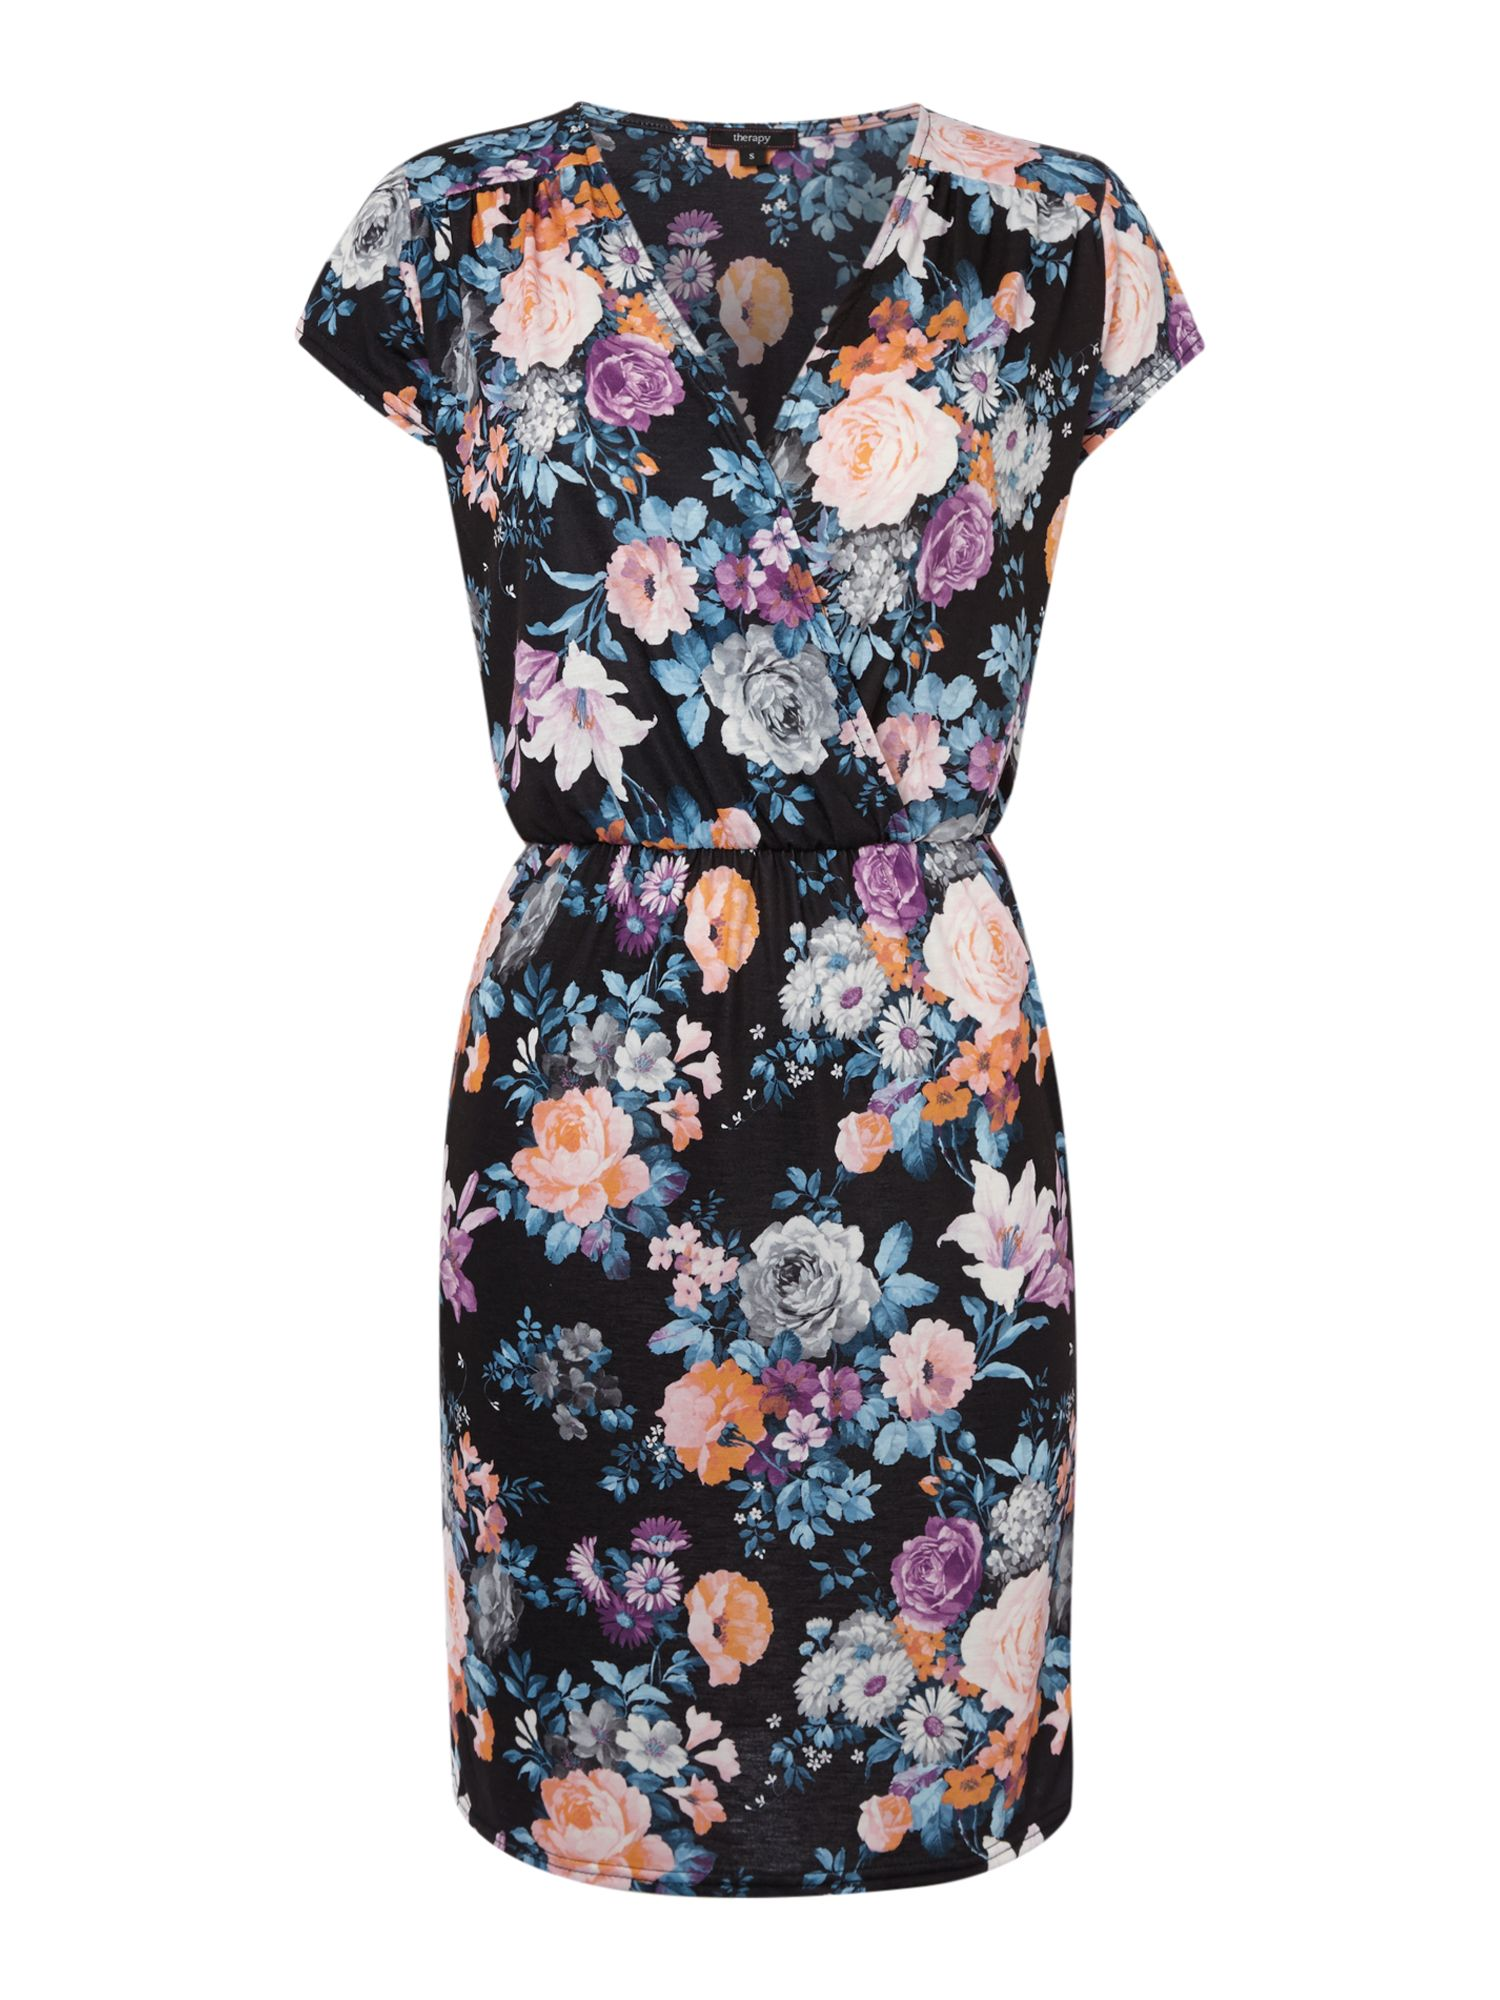 Large floral wrap dress